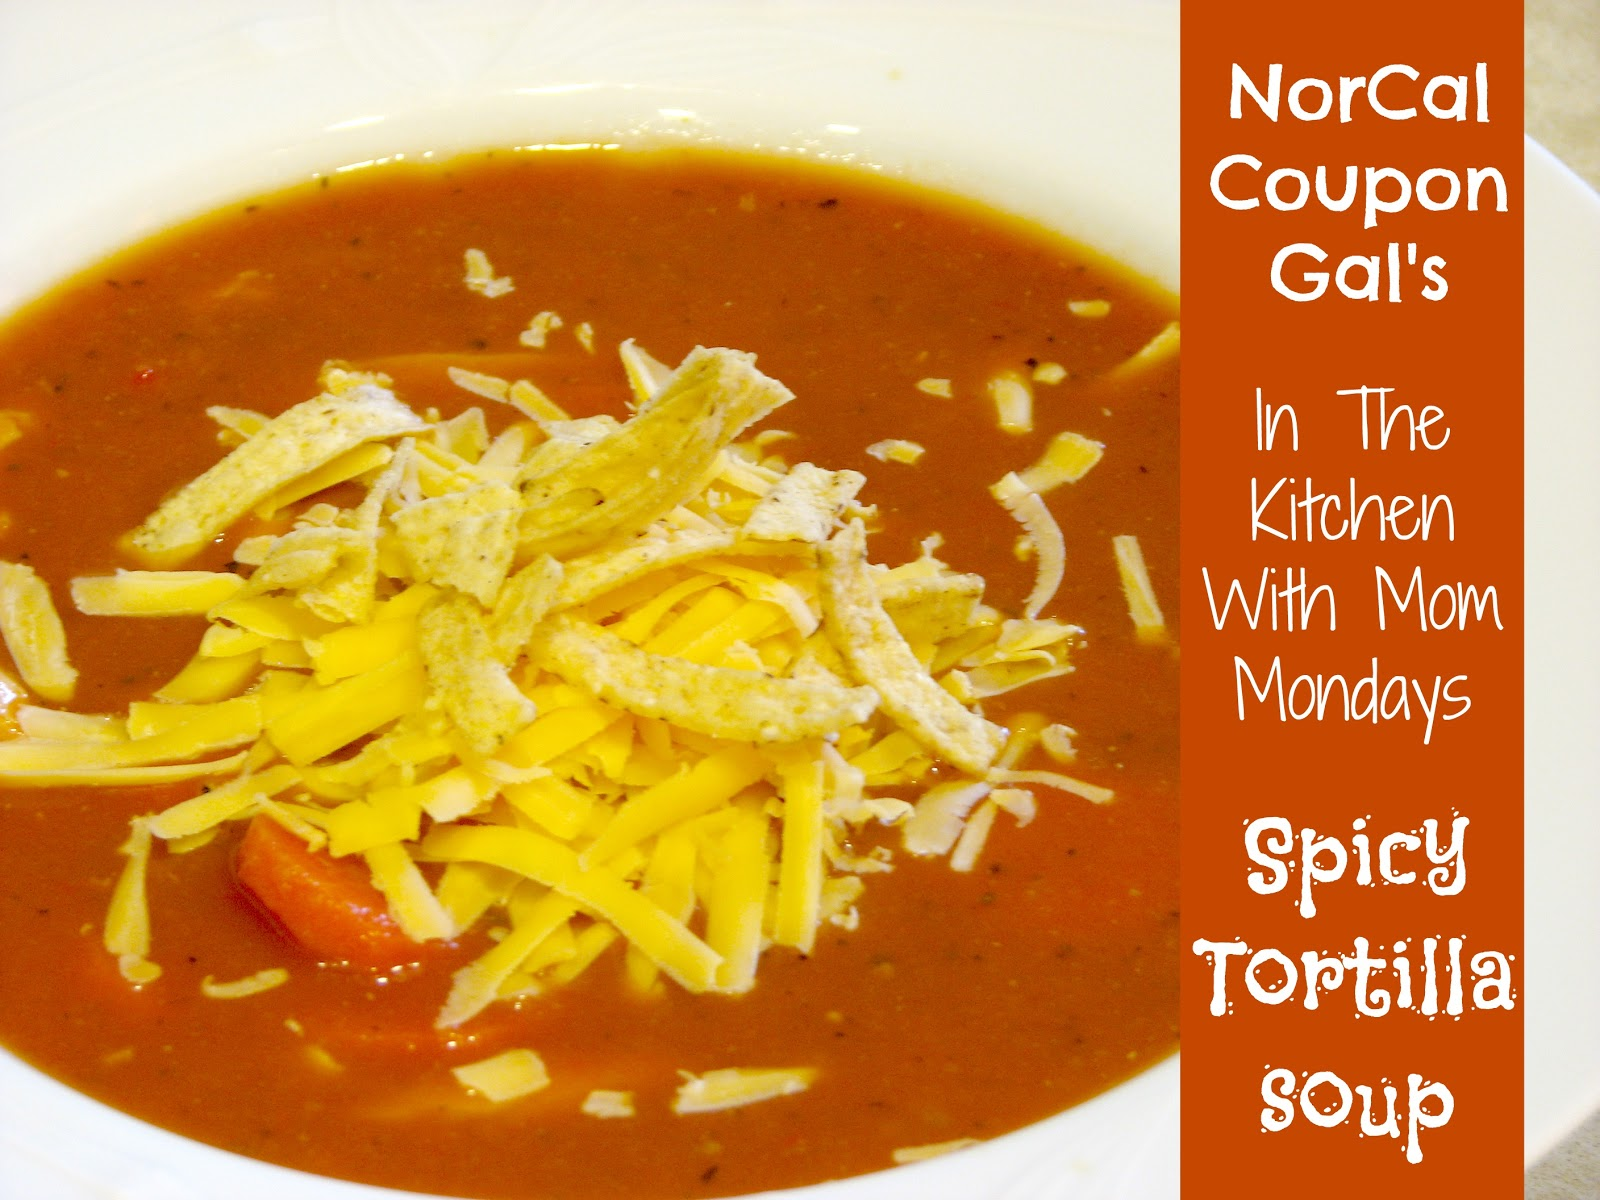 In The Kitchen With Mom Mondays: Spicy tortilla soup